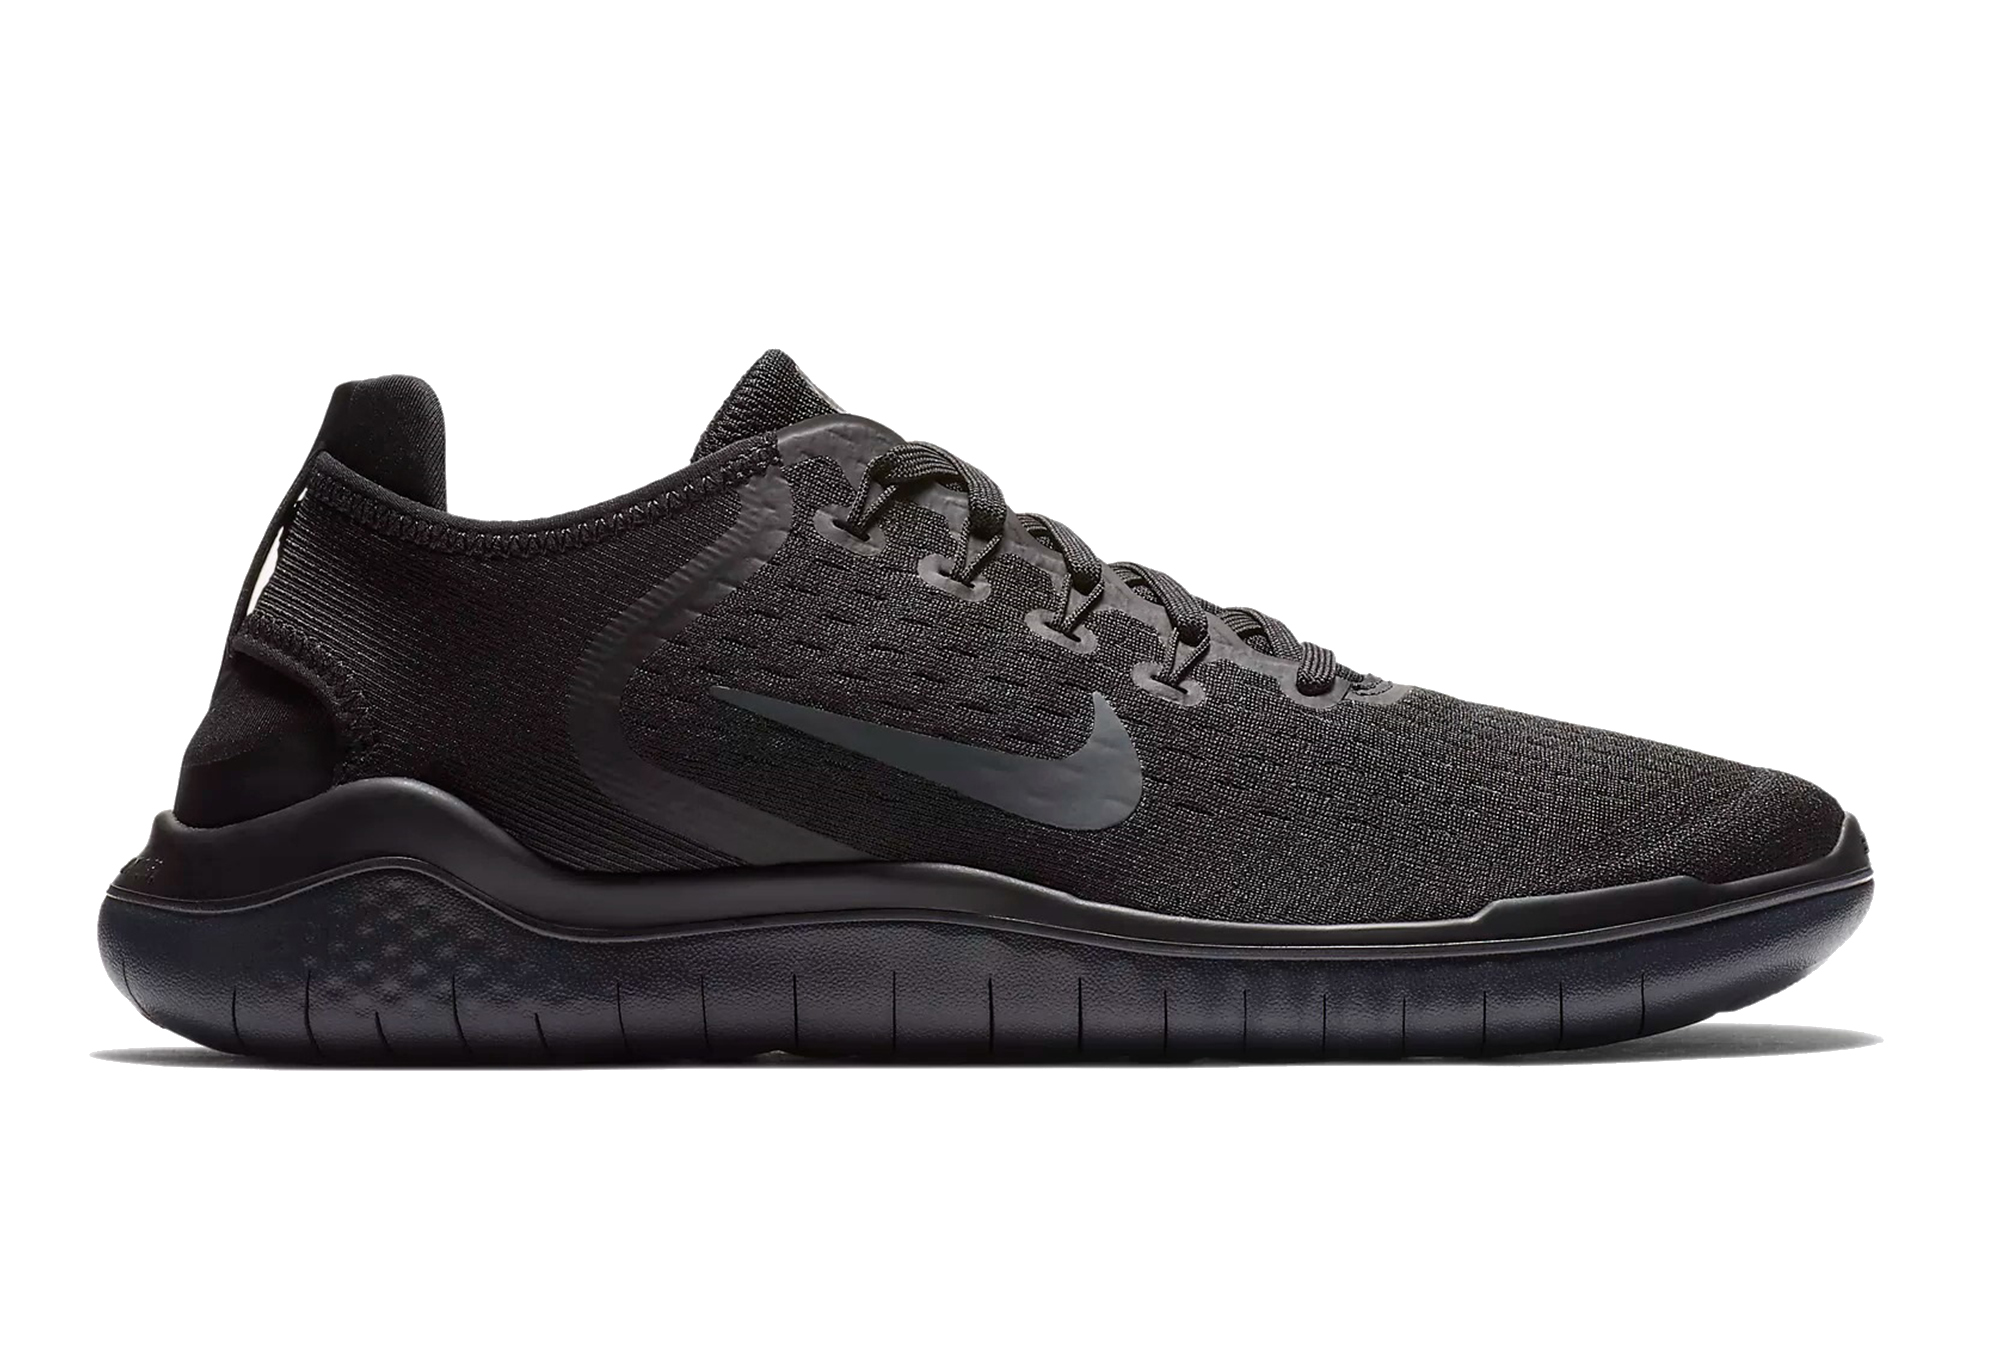 41316009e236 Nike Shoes Free RN 2018 Black Men